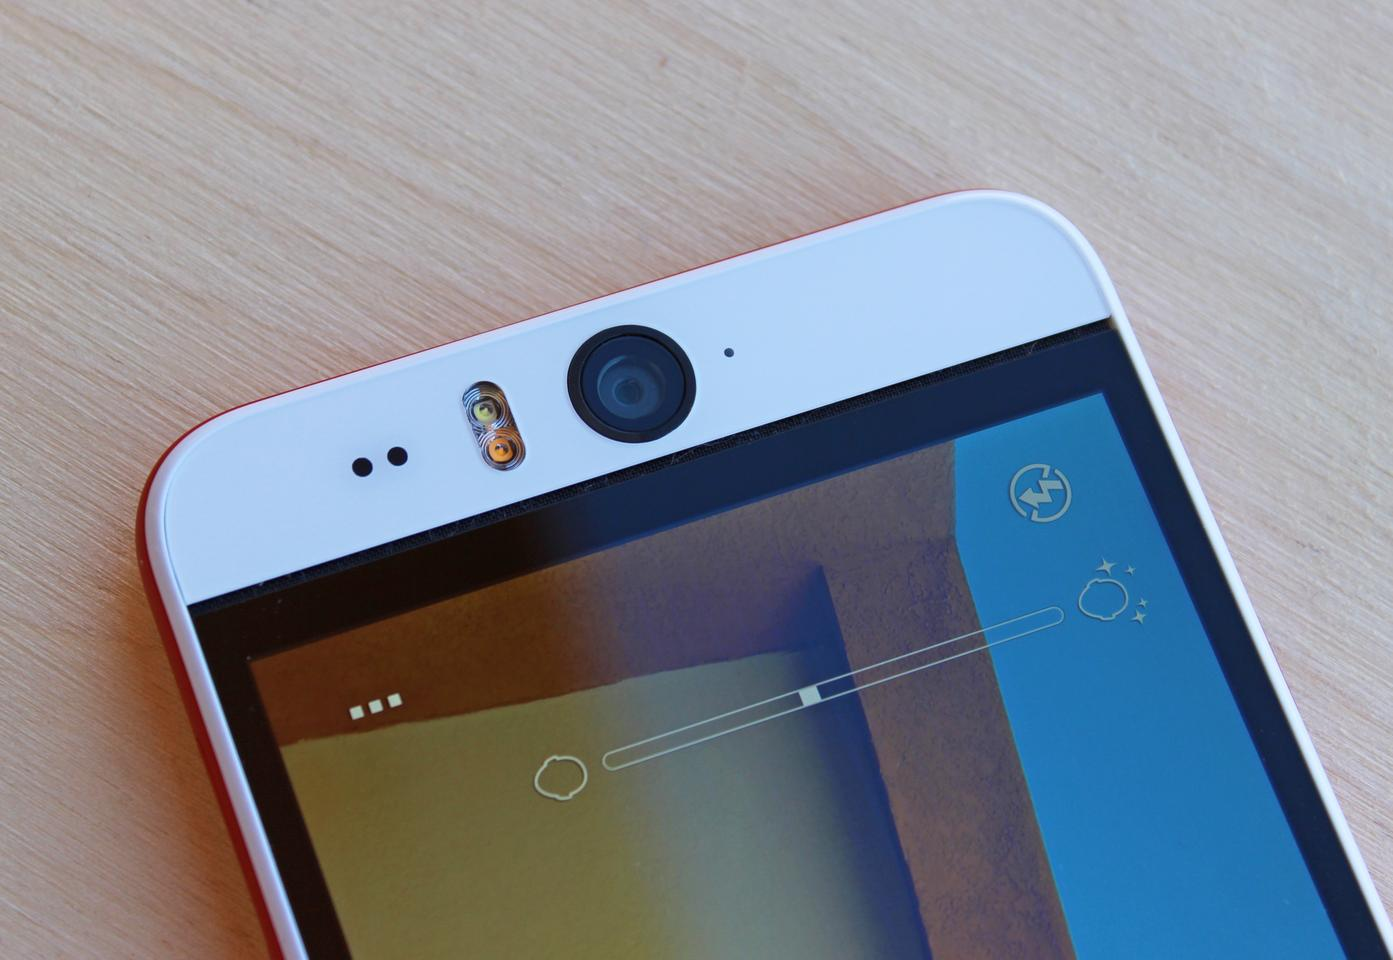 The HTC Desire Eye has a beastly 13 MP front-facing camera (Photo: Will Shanklin/Gizmag.com)